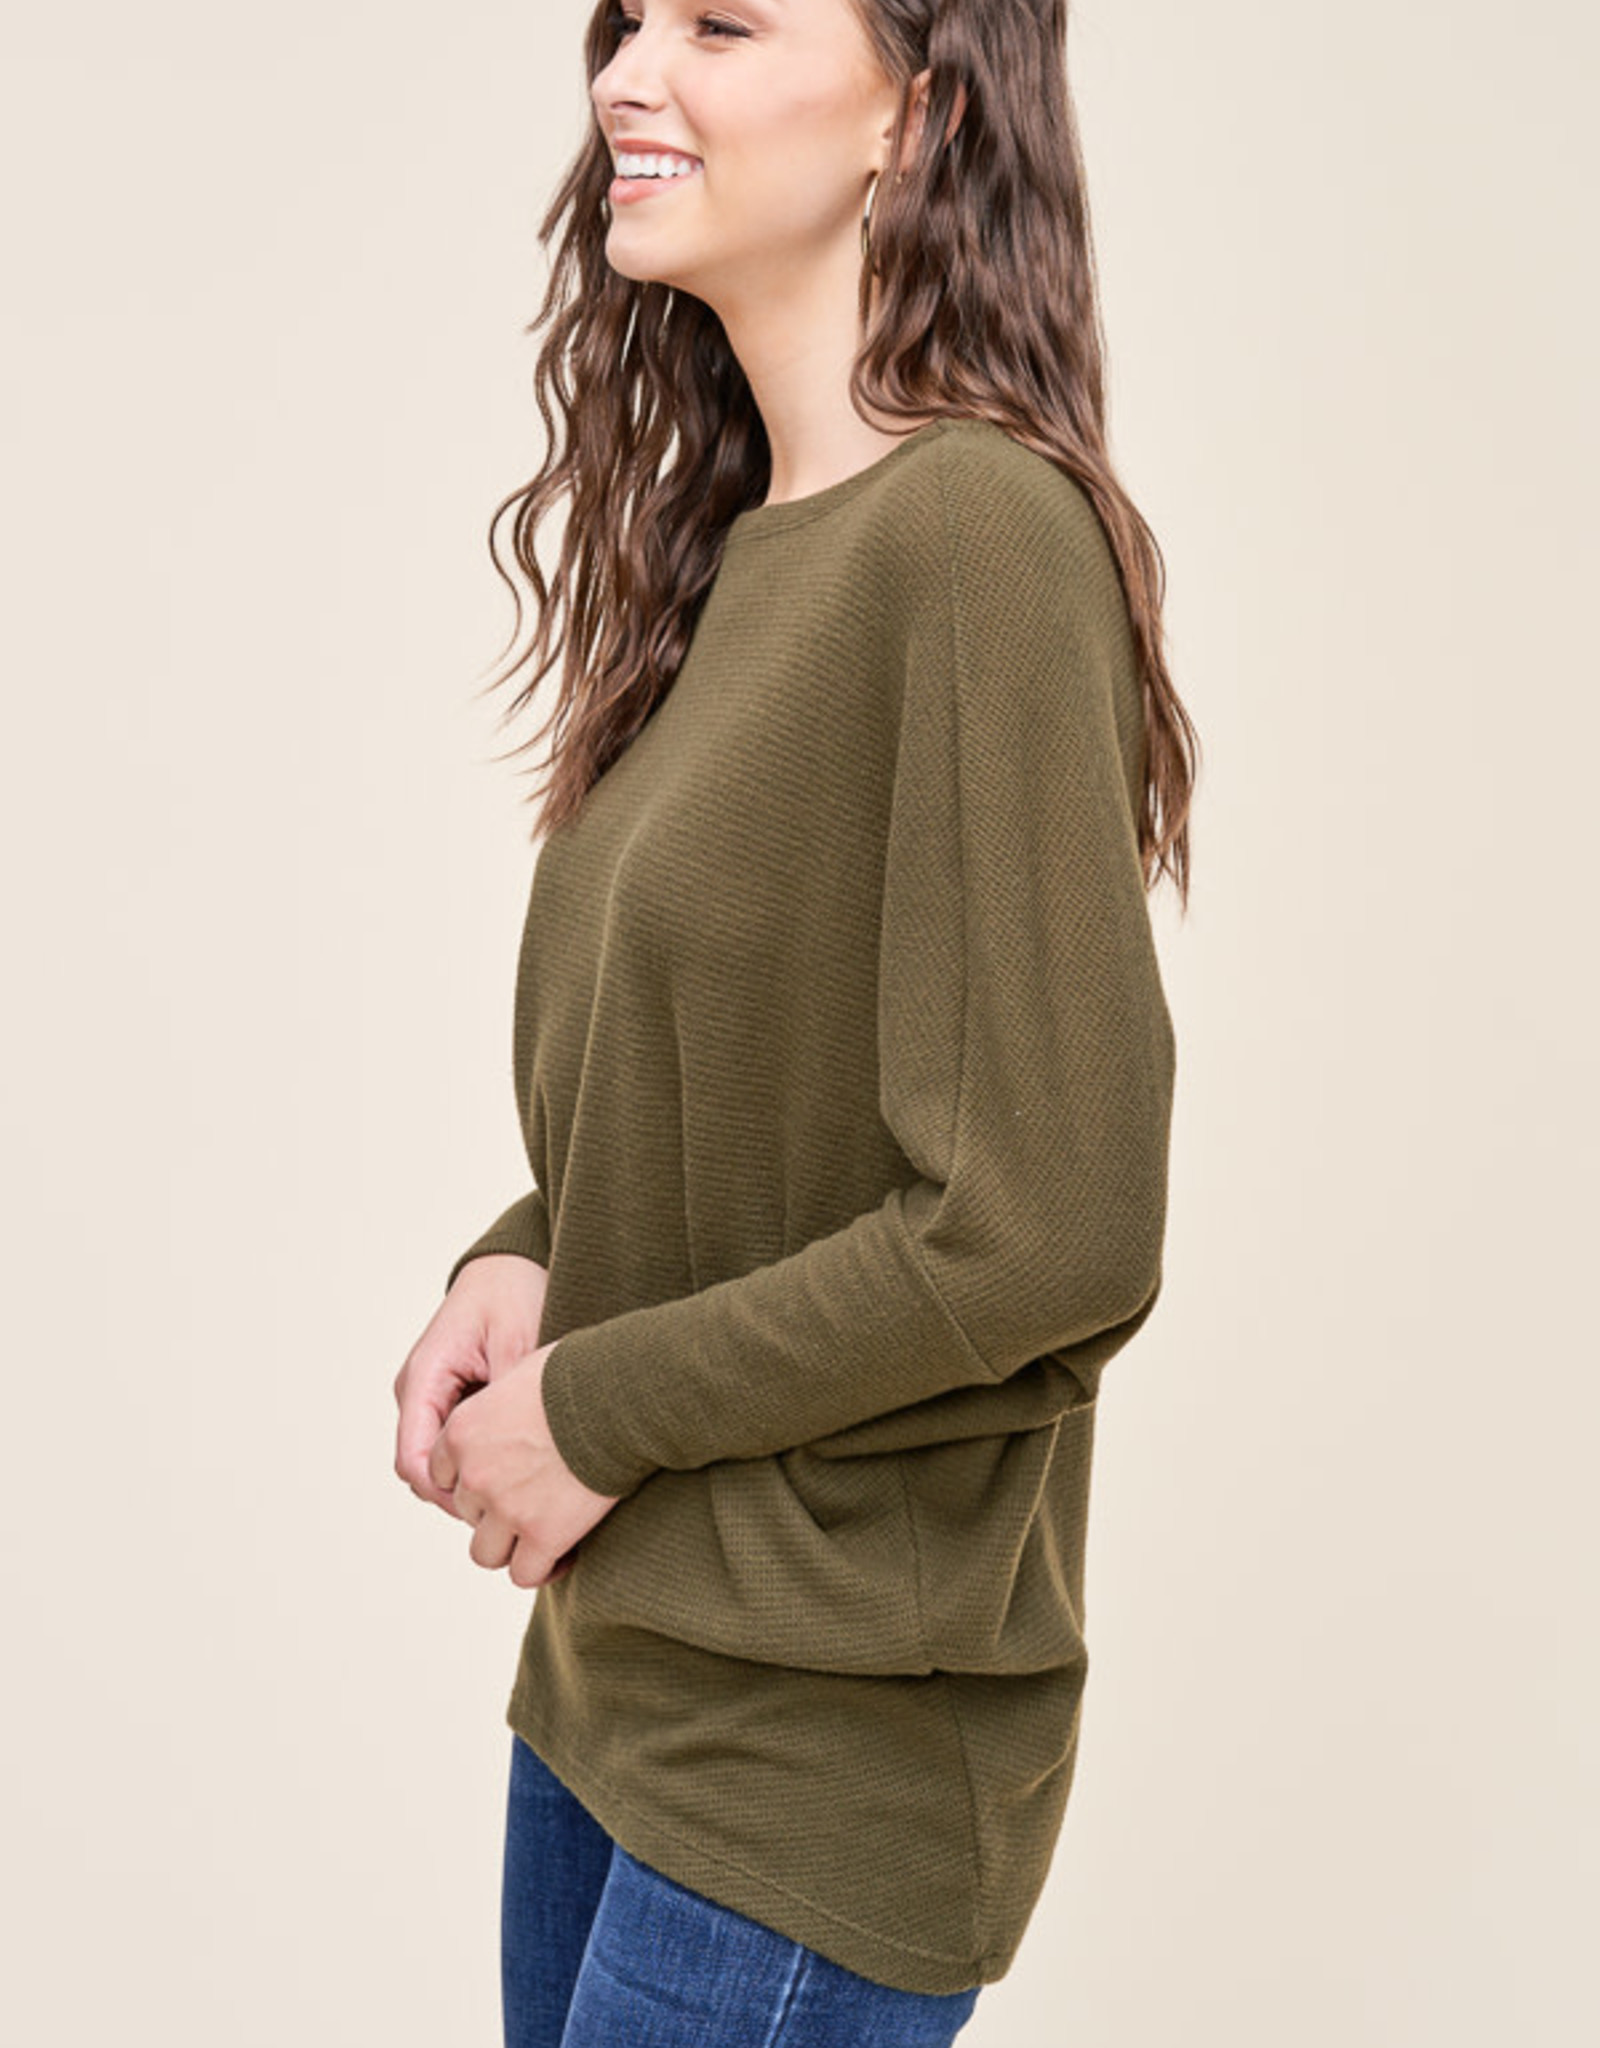 Boat Neck Top with Dolman Sleeves